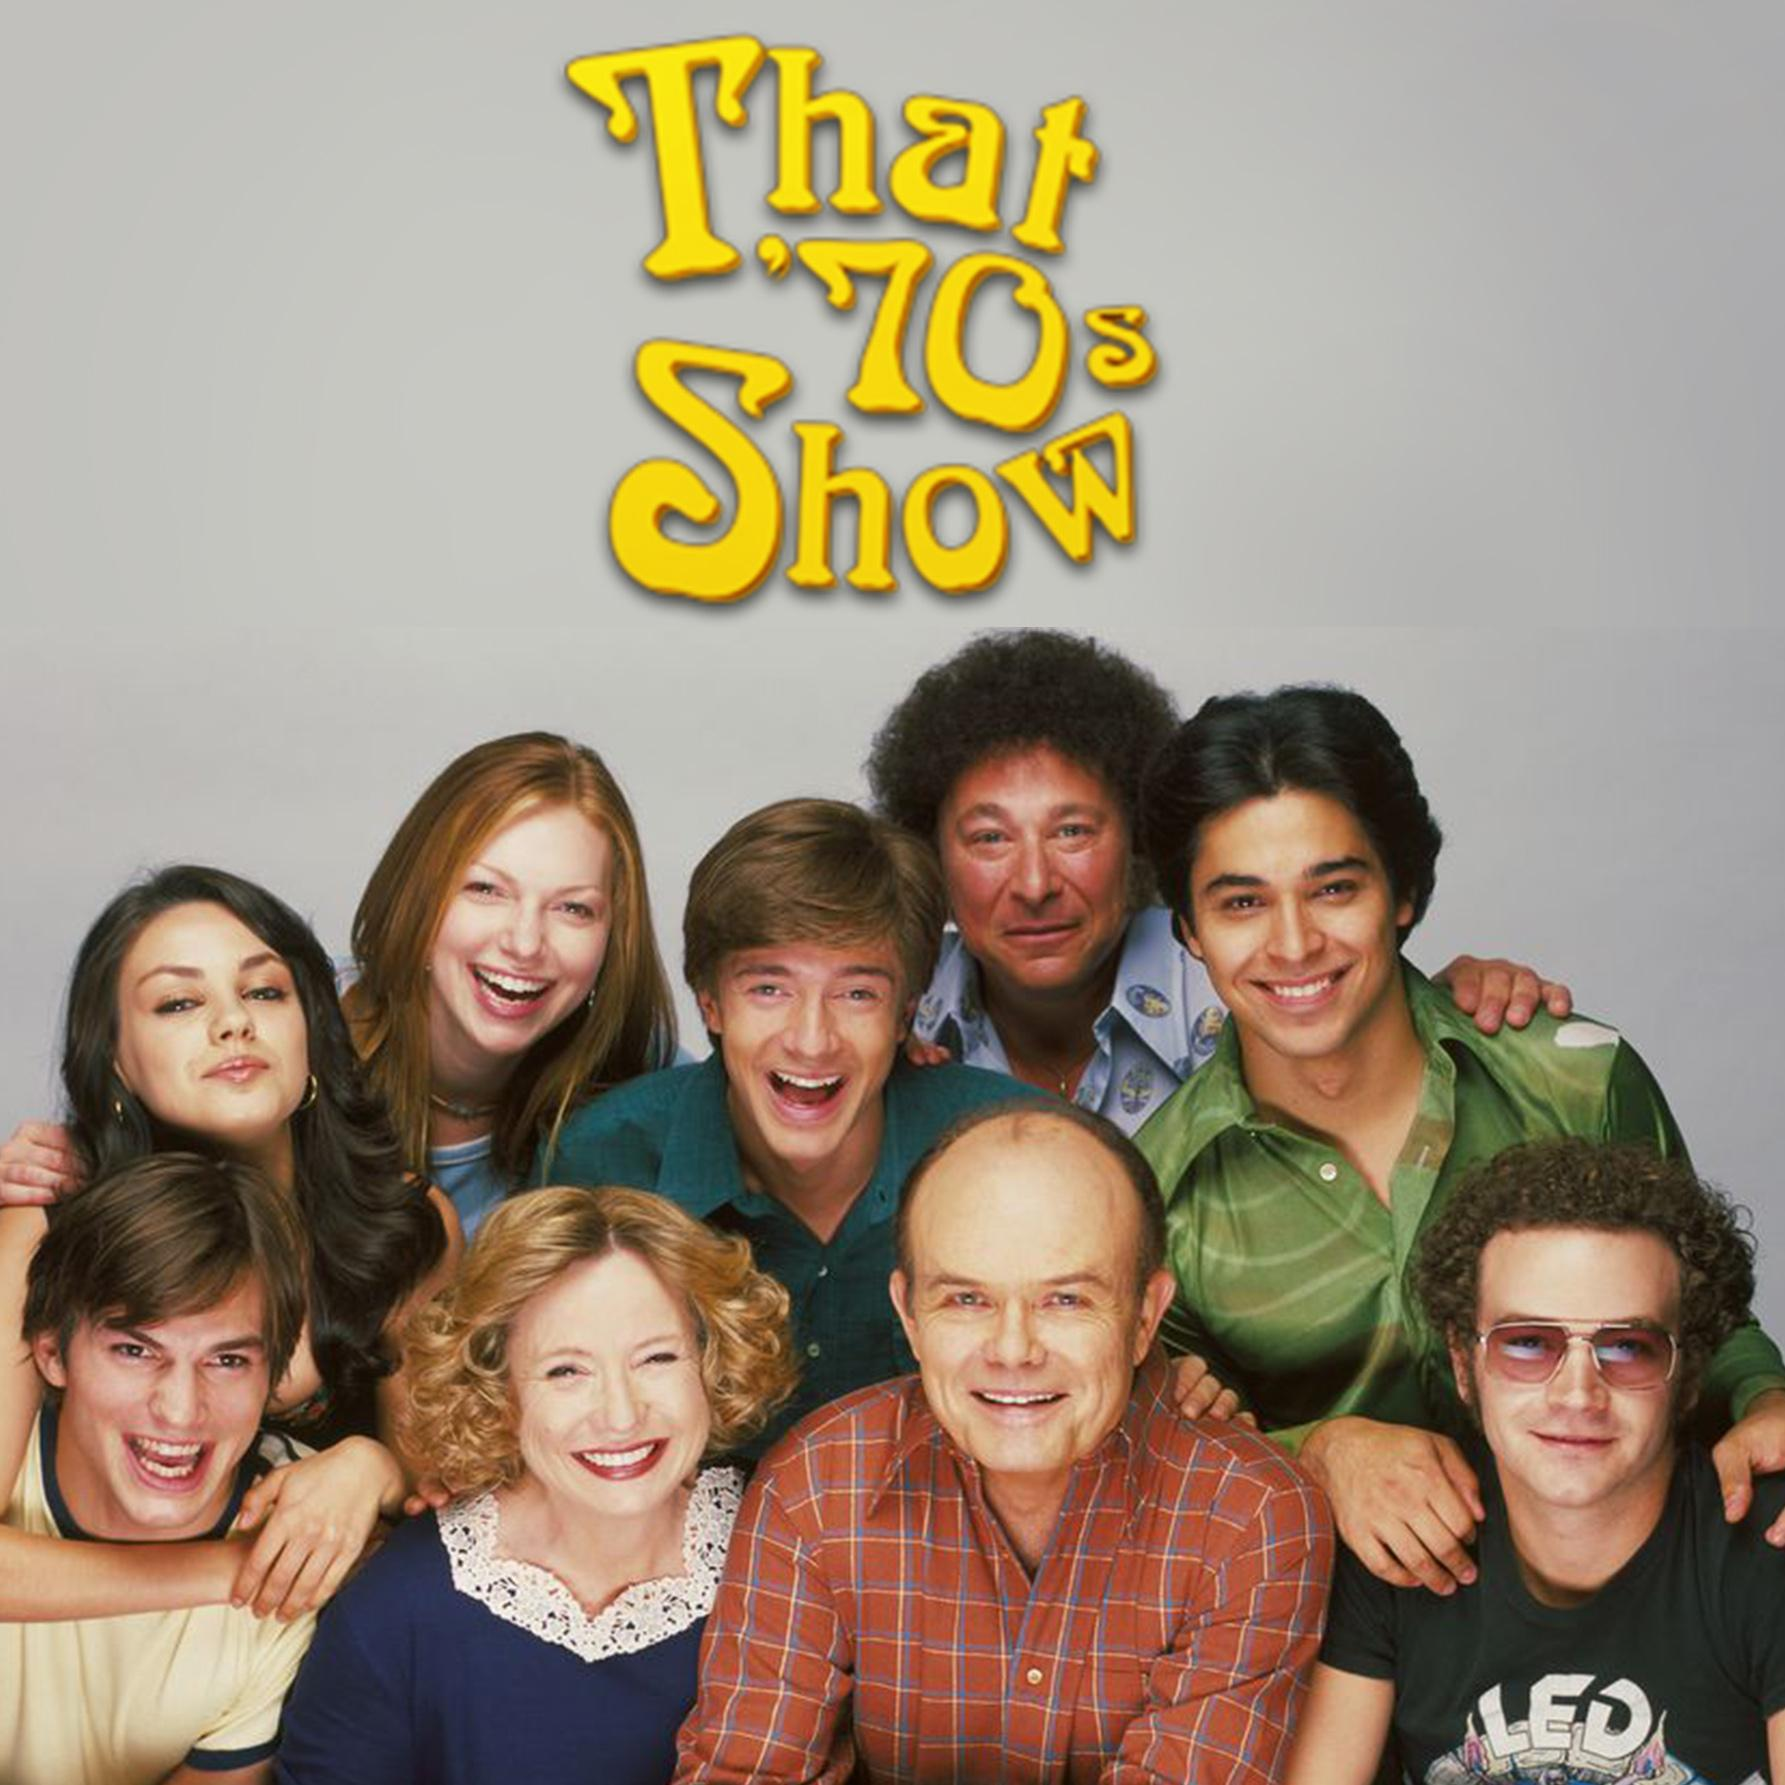 FX Brings An All-day Marathon Of 'That '70s Show' On